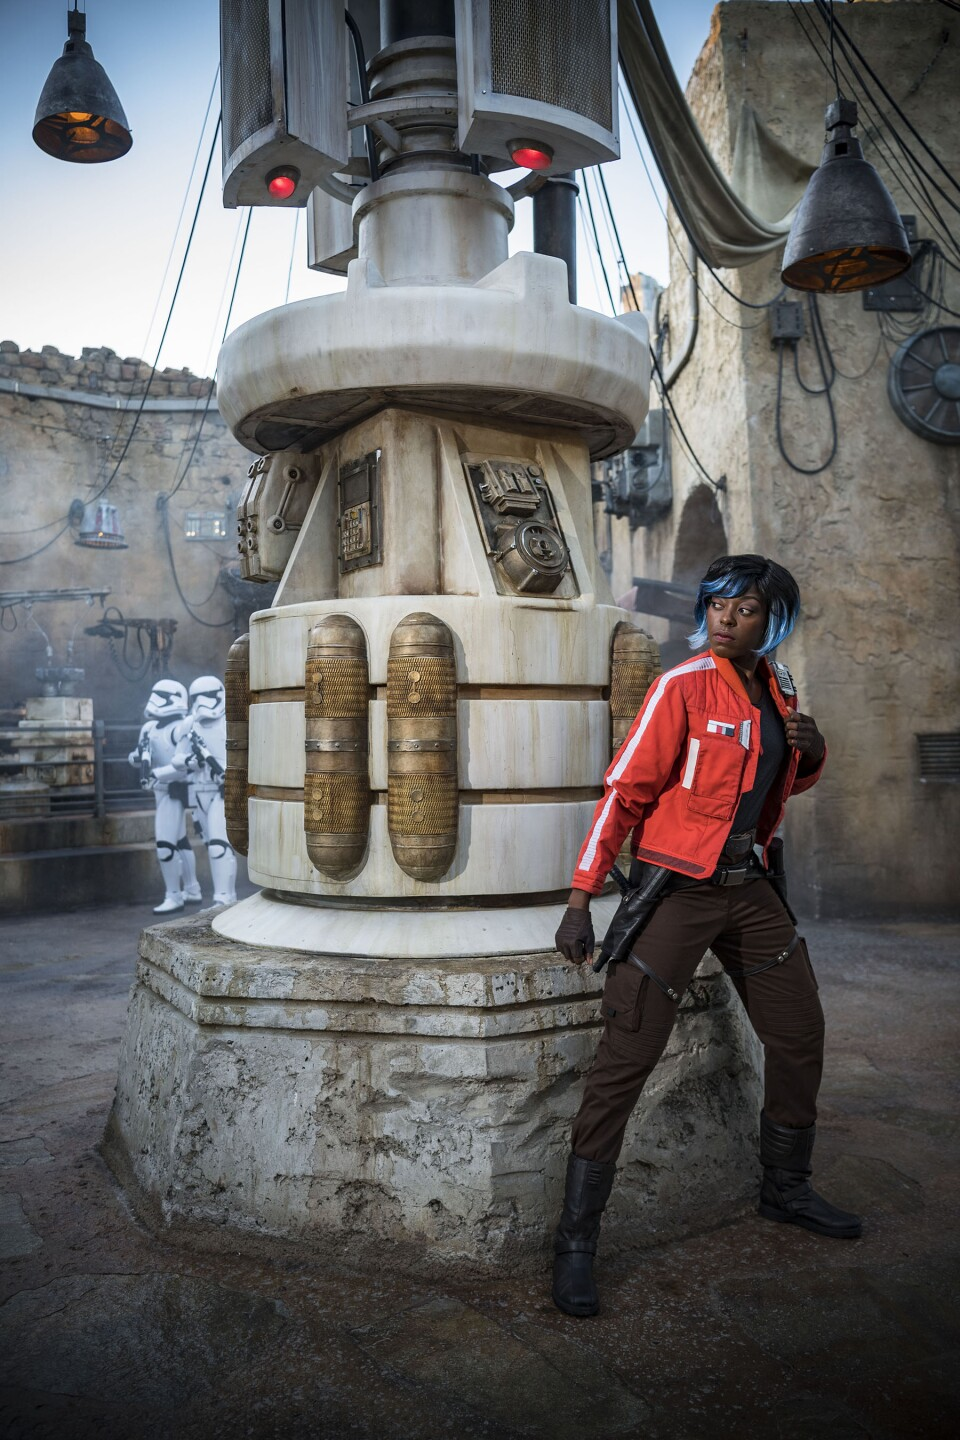 Vi Moradi at Star Wars: Galaxy's Edge